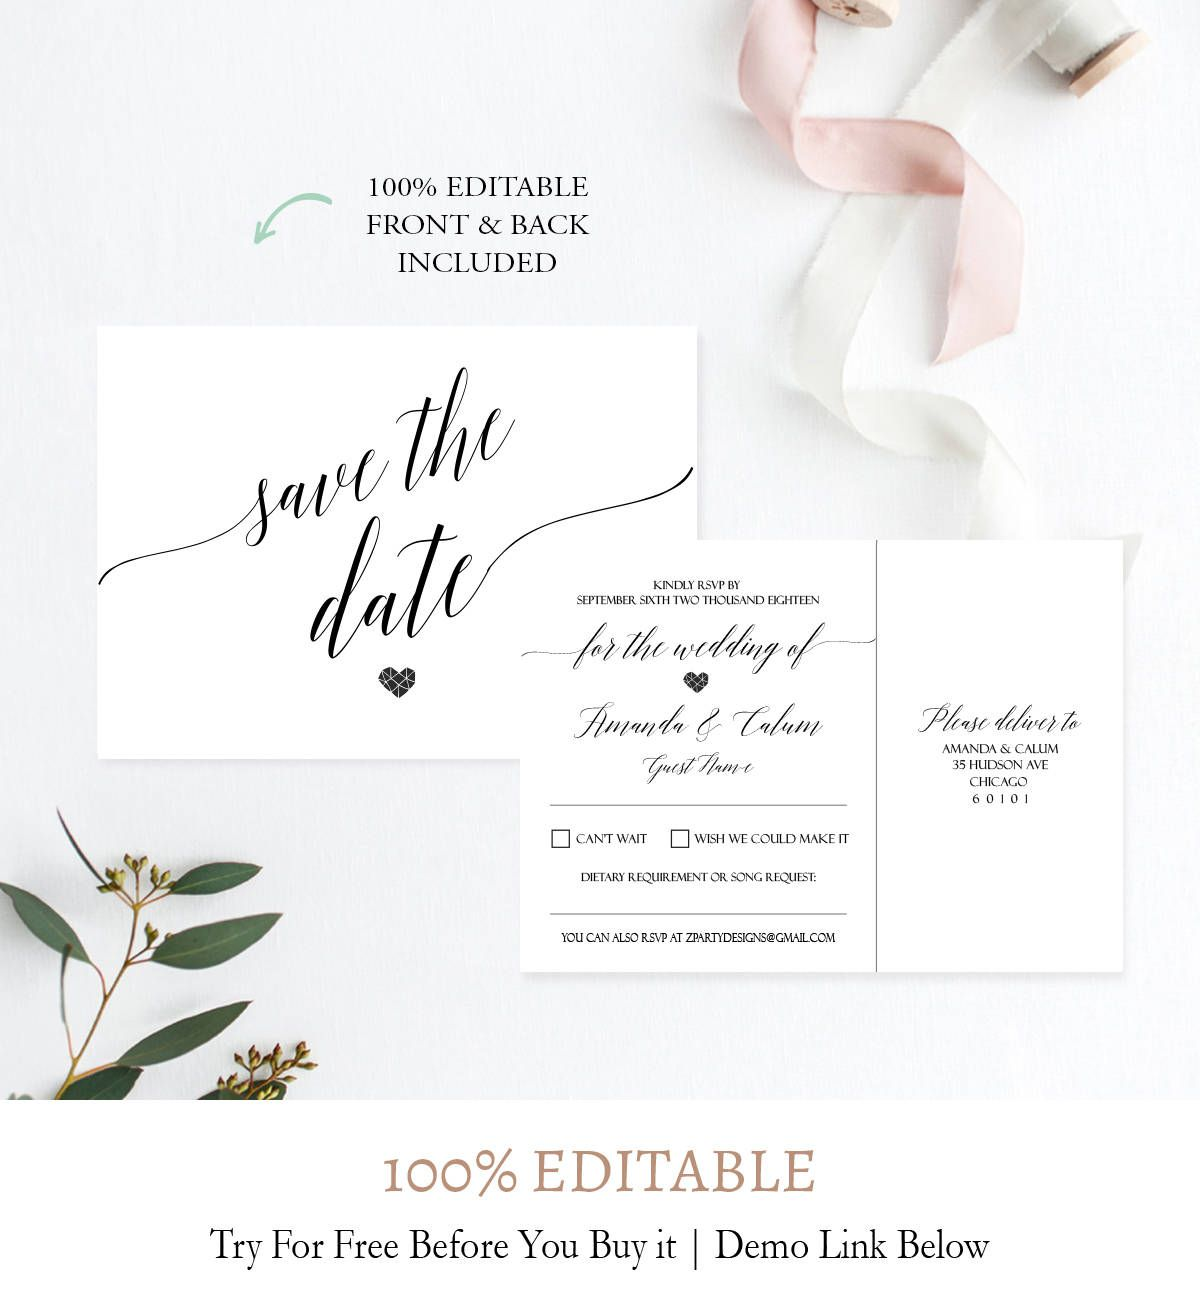 007 Outstanding Save The Date Postcard Template Image  Diy Free BirthdayFull